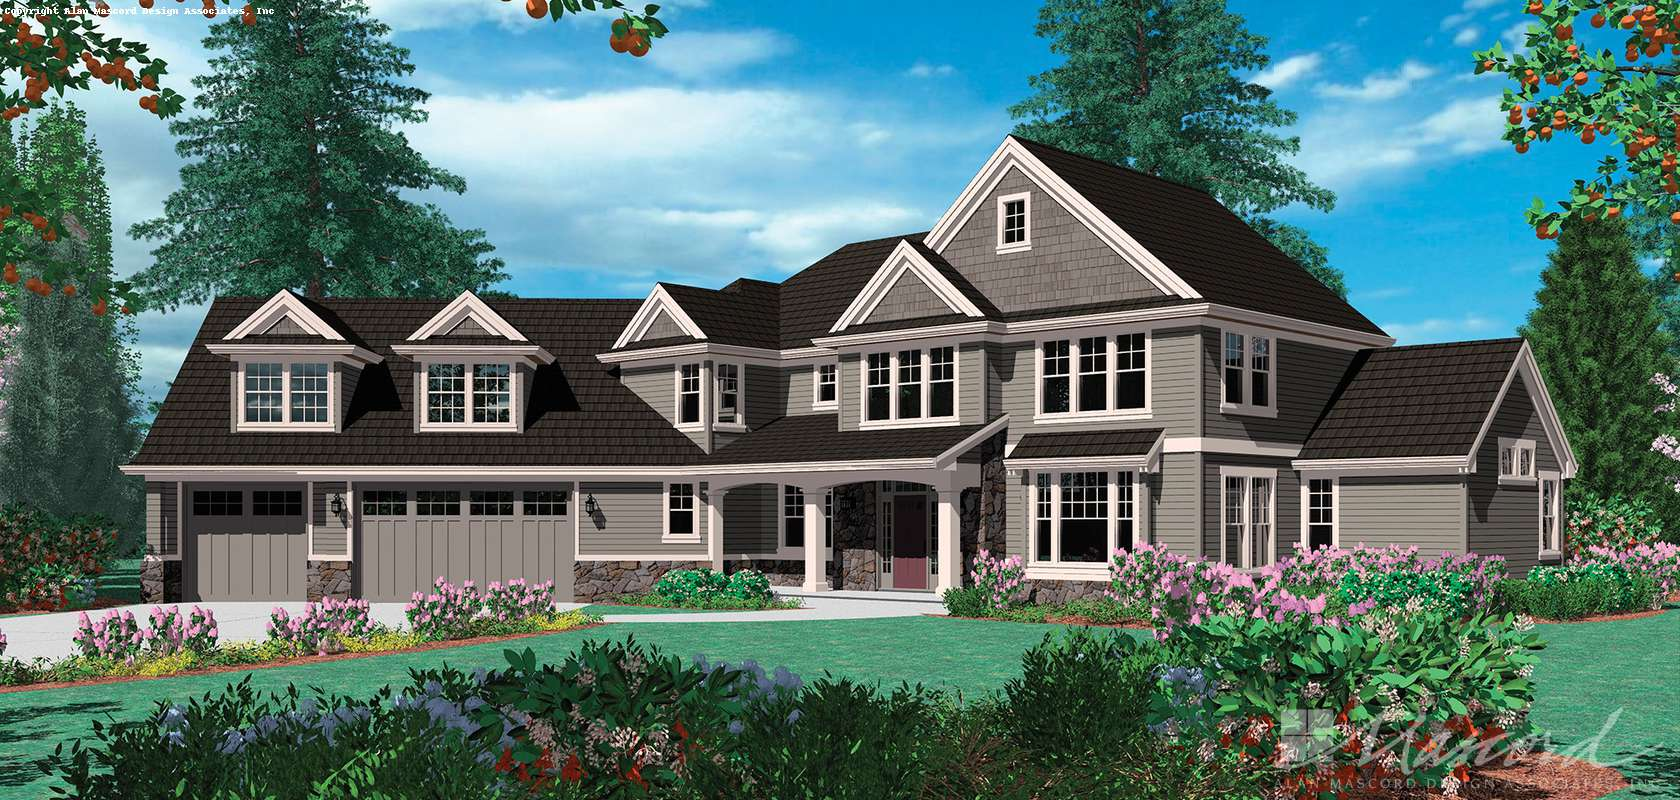 Mascord House Plan 2346: The Kaiser